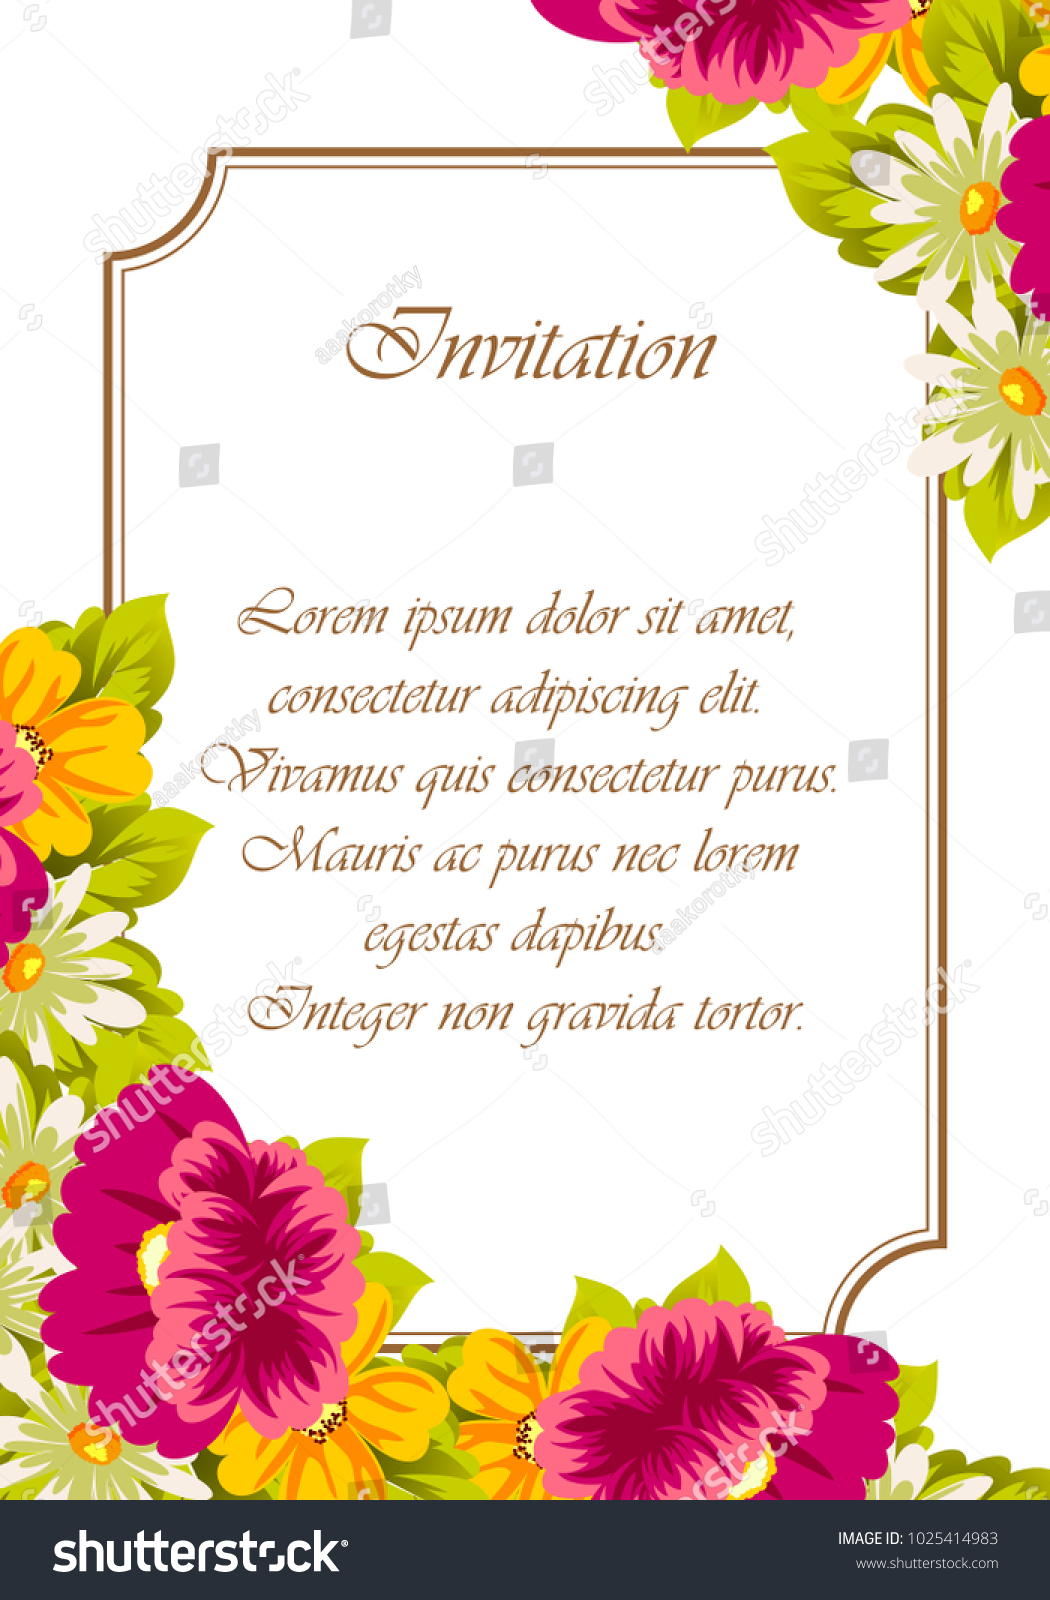 Frame flowers card designs greeting cards stock vector 1025414983 frame of flowers for card designs greeting cards birthday invitations valentines day m4hsunfo